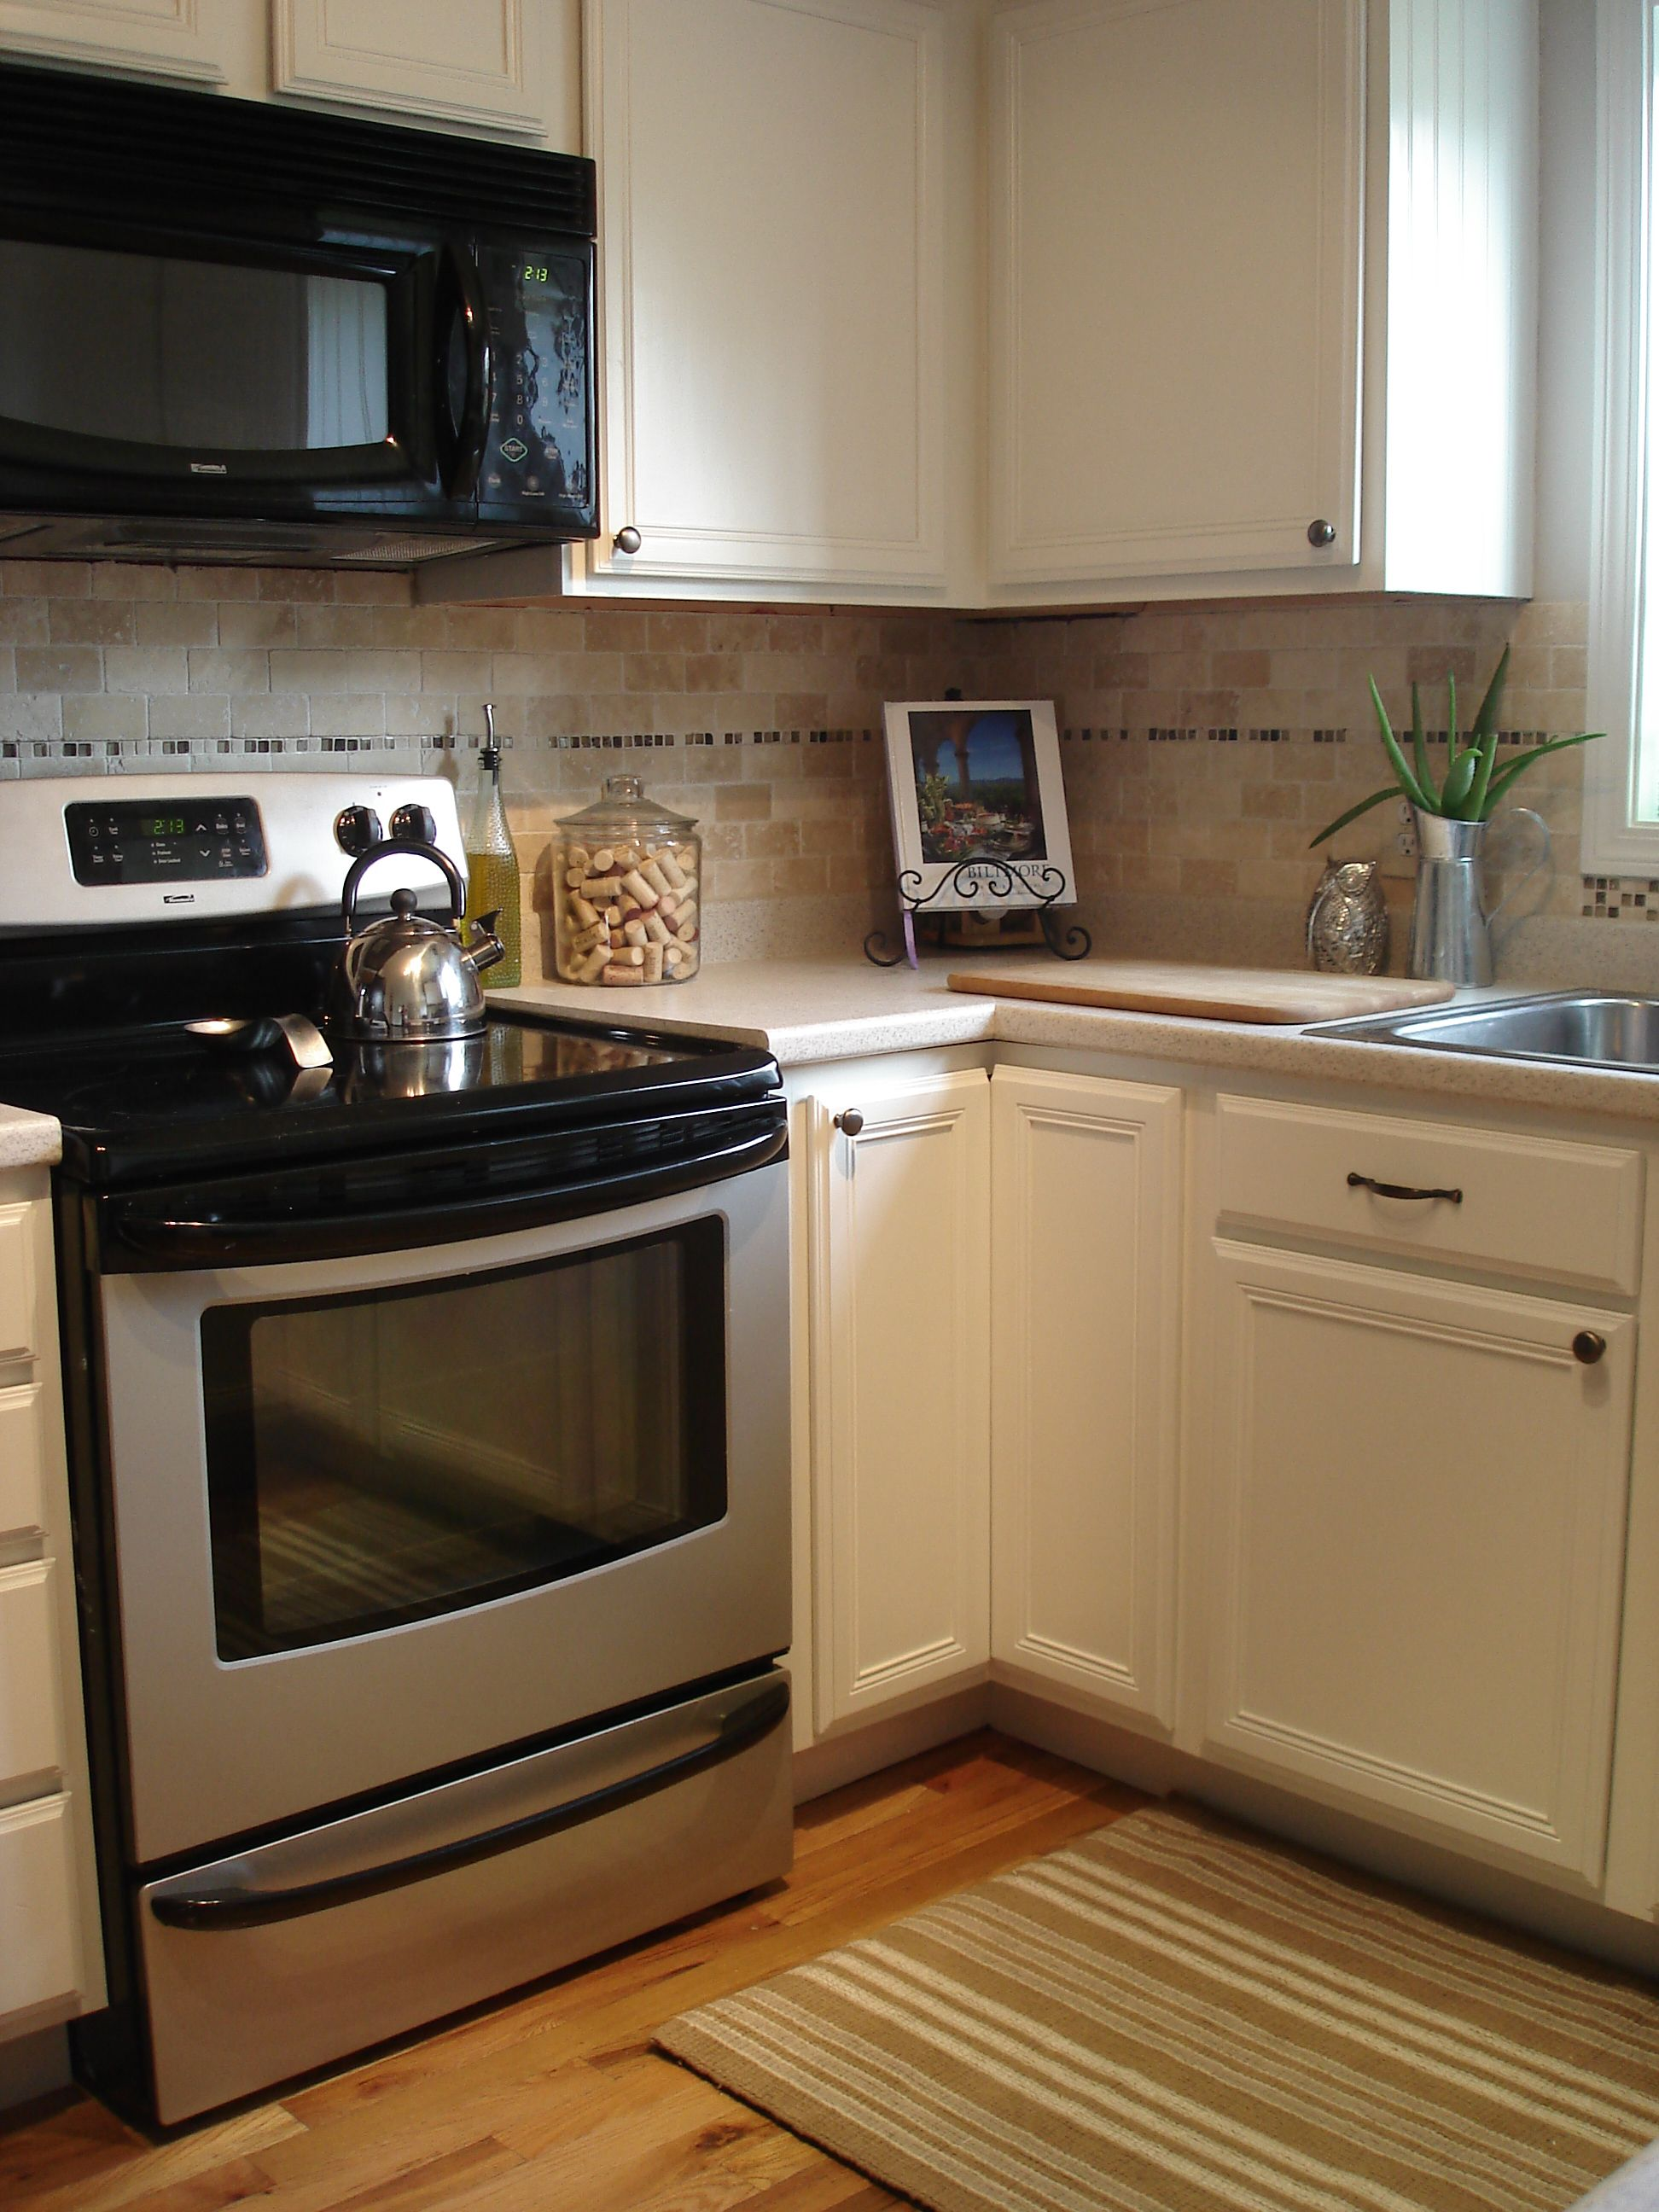 Pin By Candice Startzman On Our First Home Painting Fake Wood Old Kitchen Cabinets Kitchen Cabinets Makeover